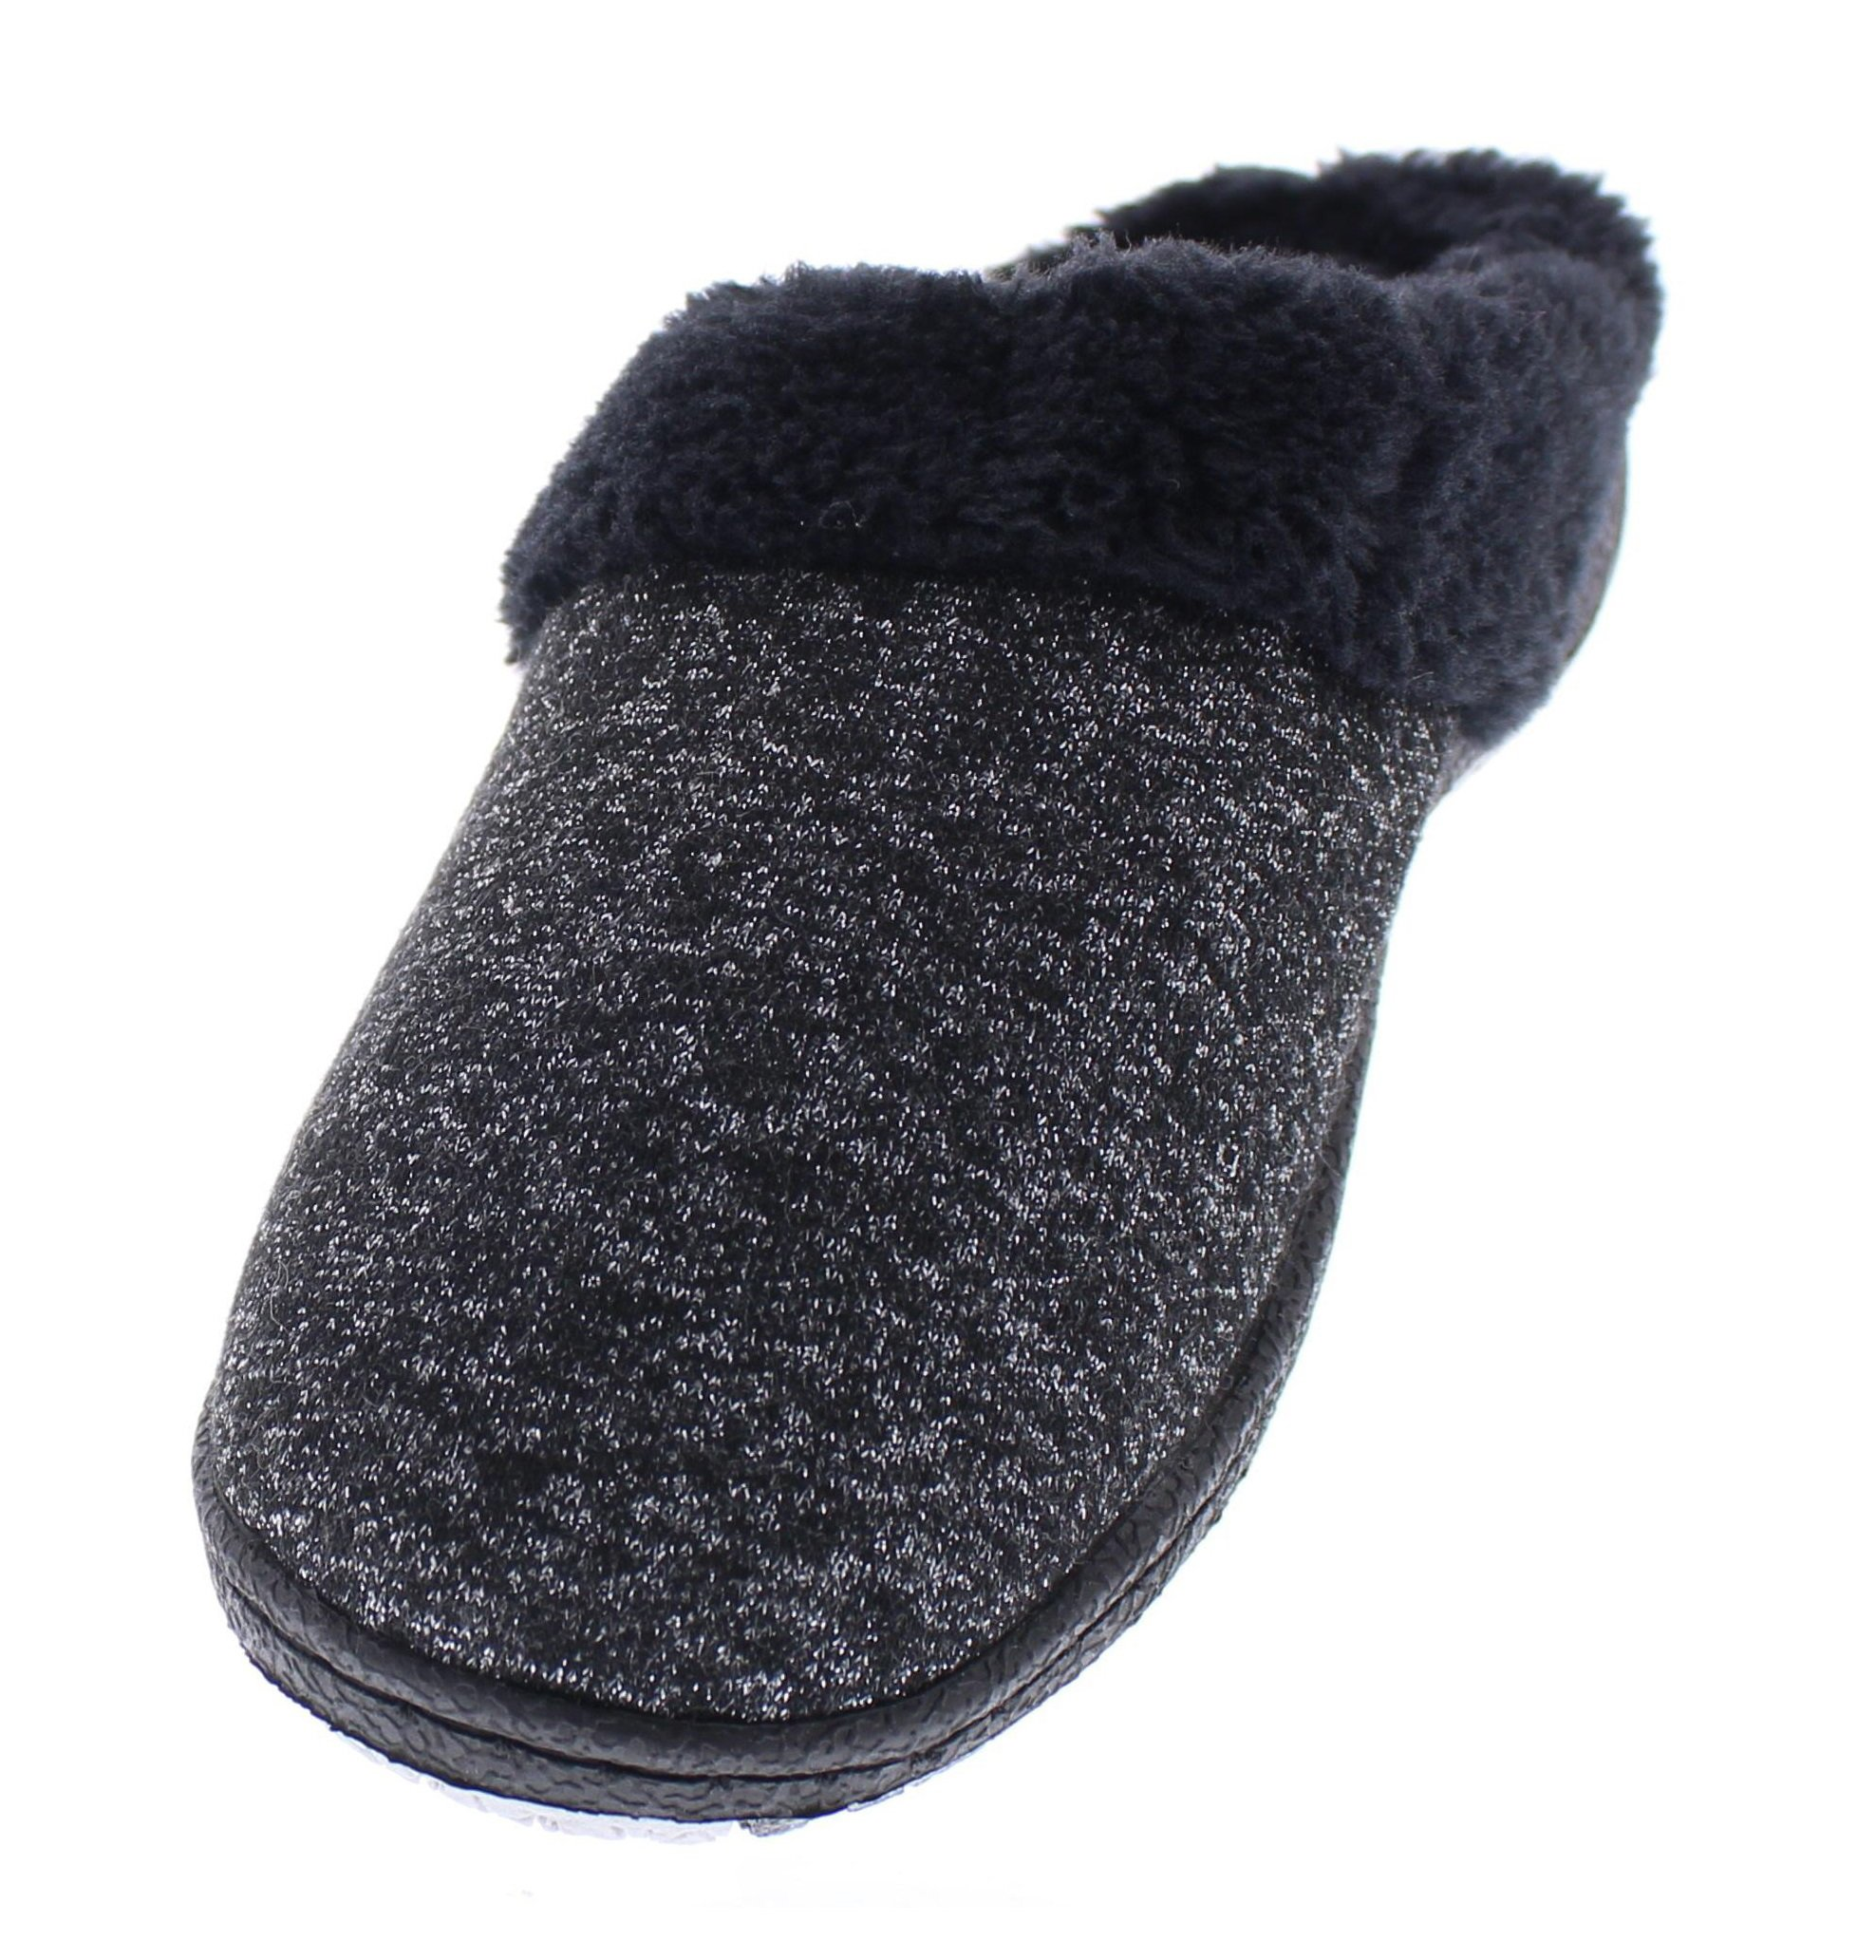 Gold Toe Women's Nishti Heather Knit Metallic Sparkle Fur Lined Clog House Slipper Black L 9 US